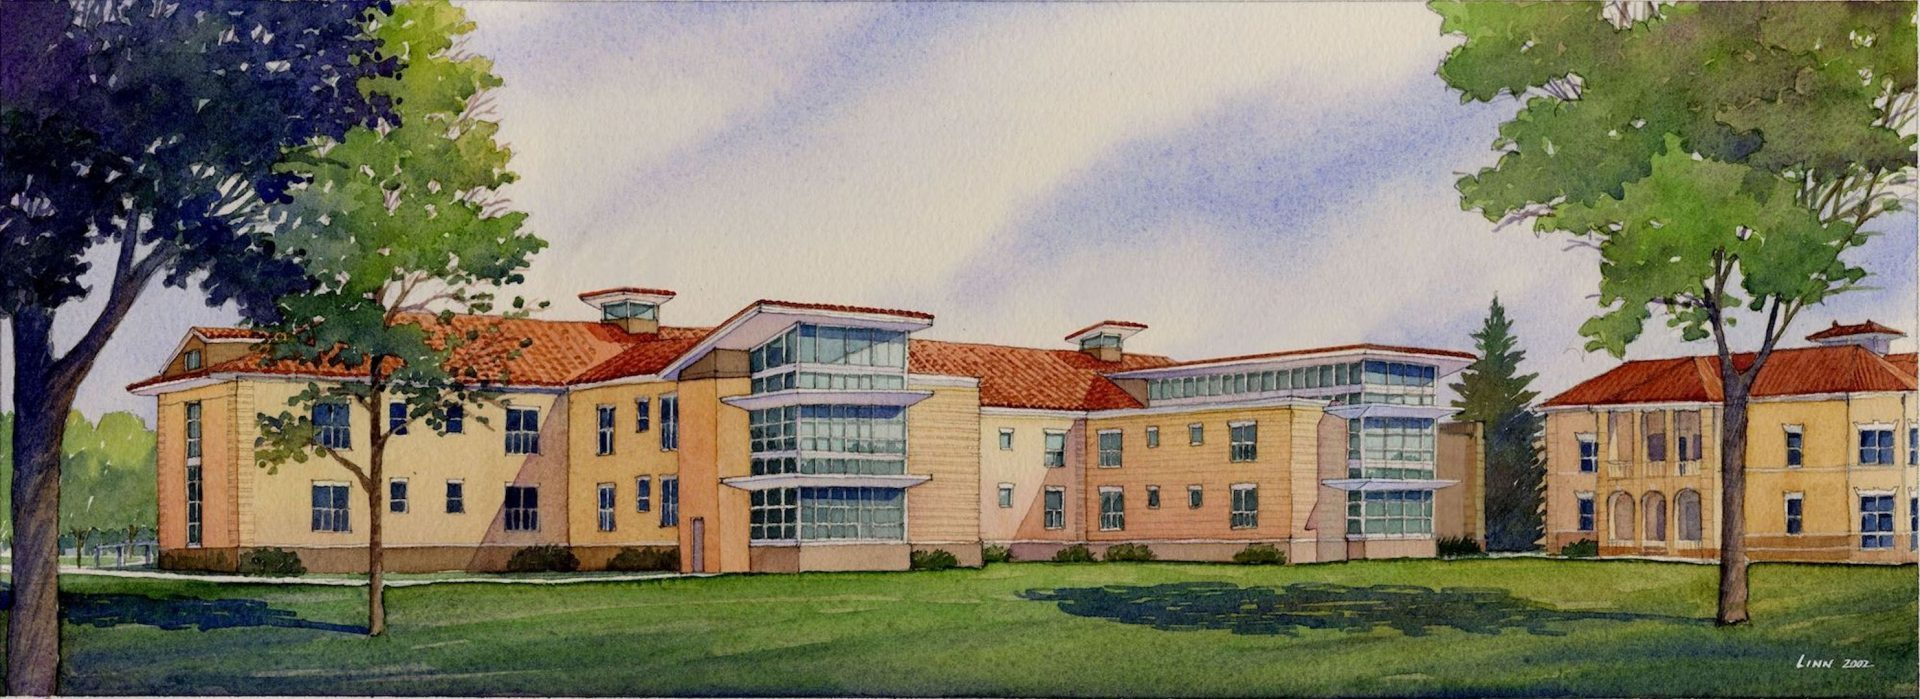 Indiana Regional Treatment Centers Rendering